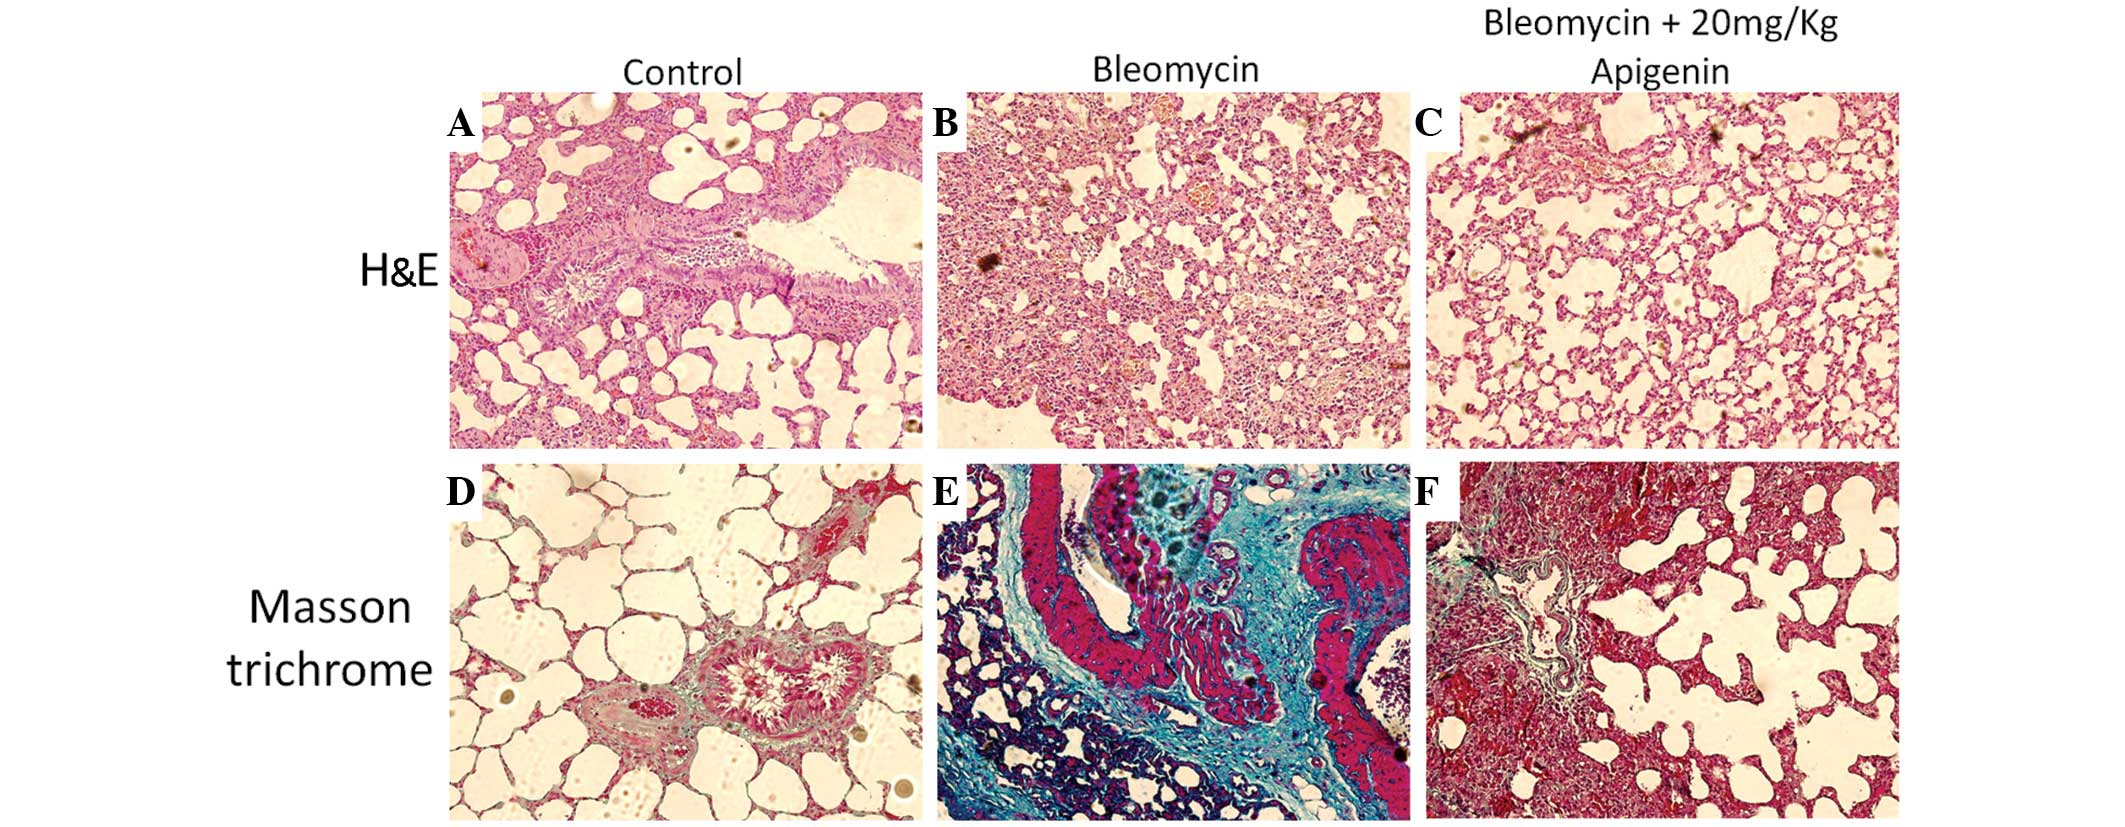 Apigenin protects against bleomycin‑induced lung fibrosis in rats